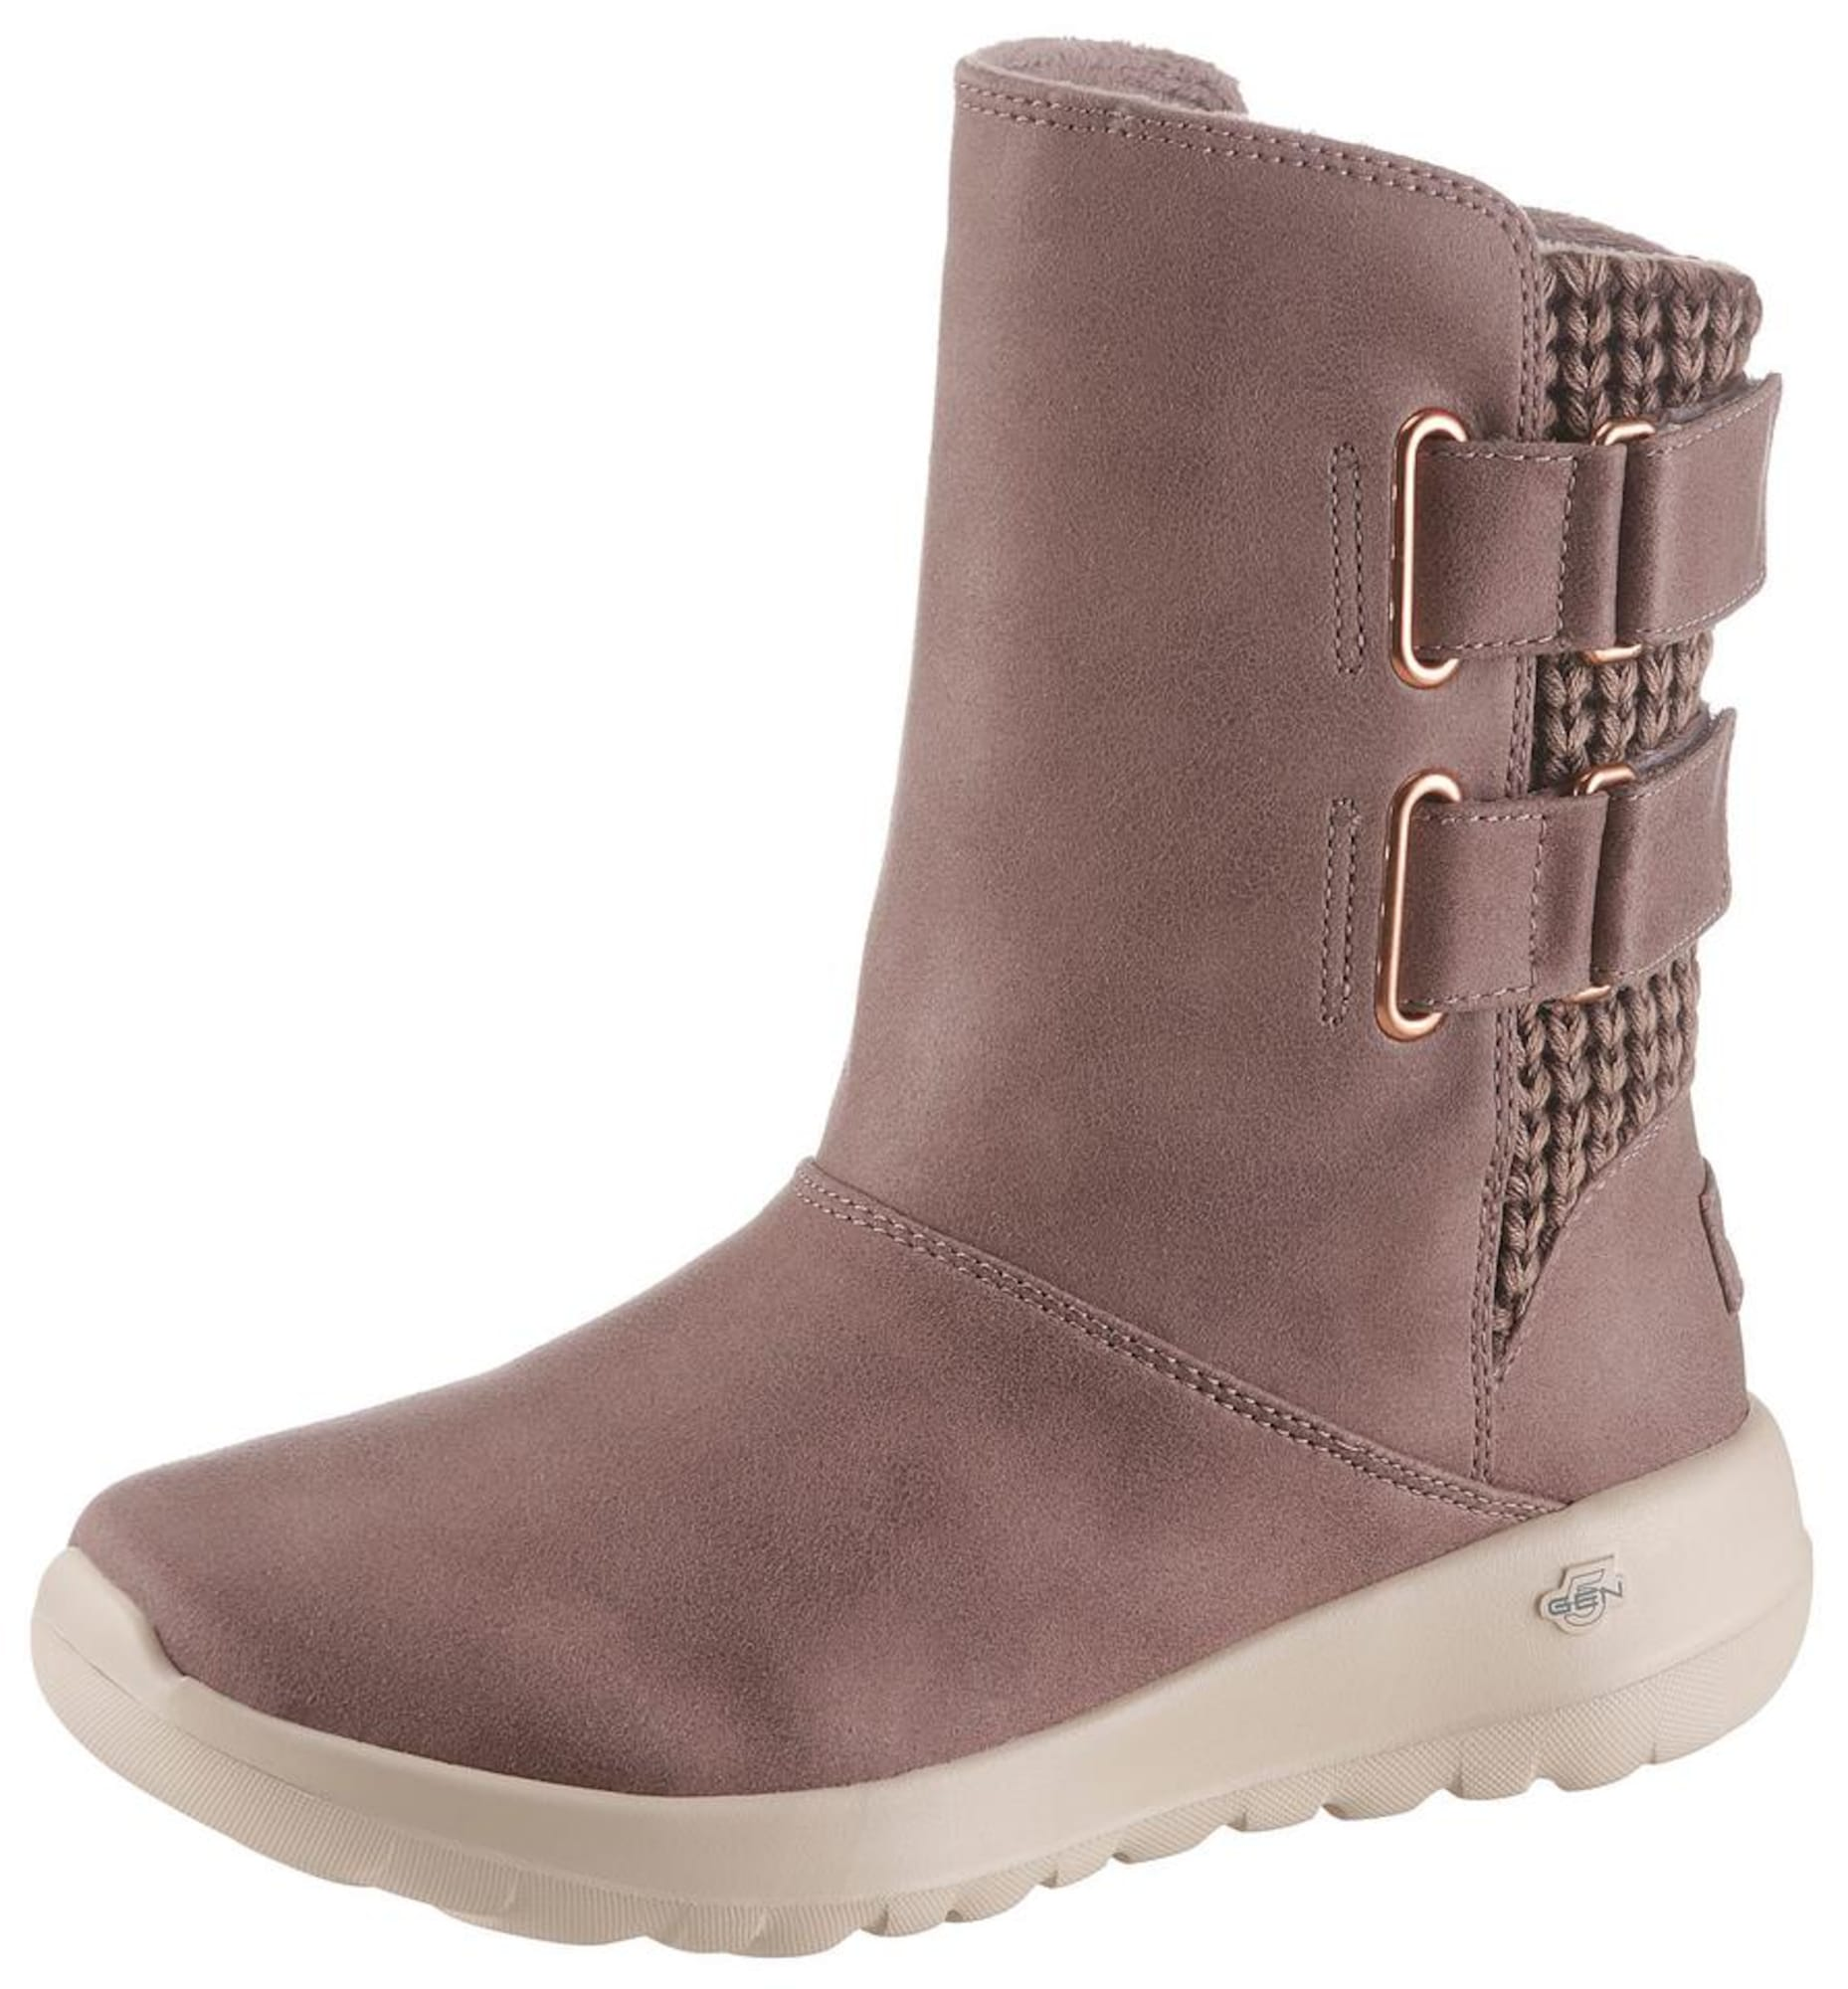 Winterboots 'On-The Go Joy - Sweater Weather' | Schuhe > Boots > Winterboots | Skechers